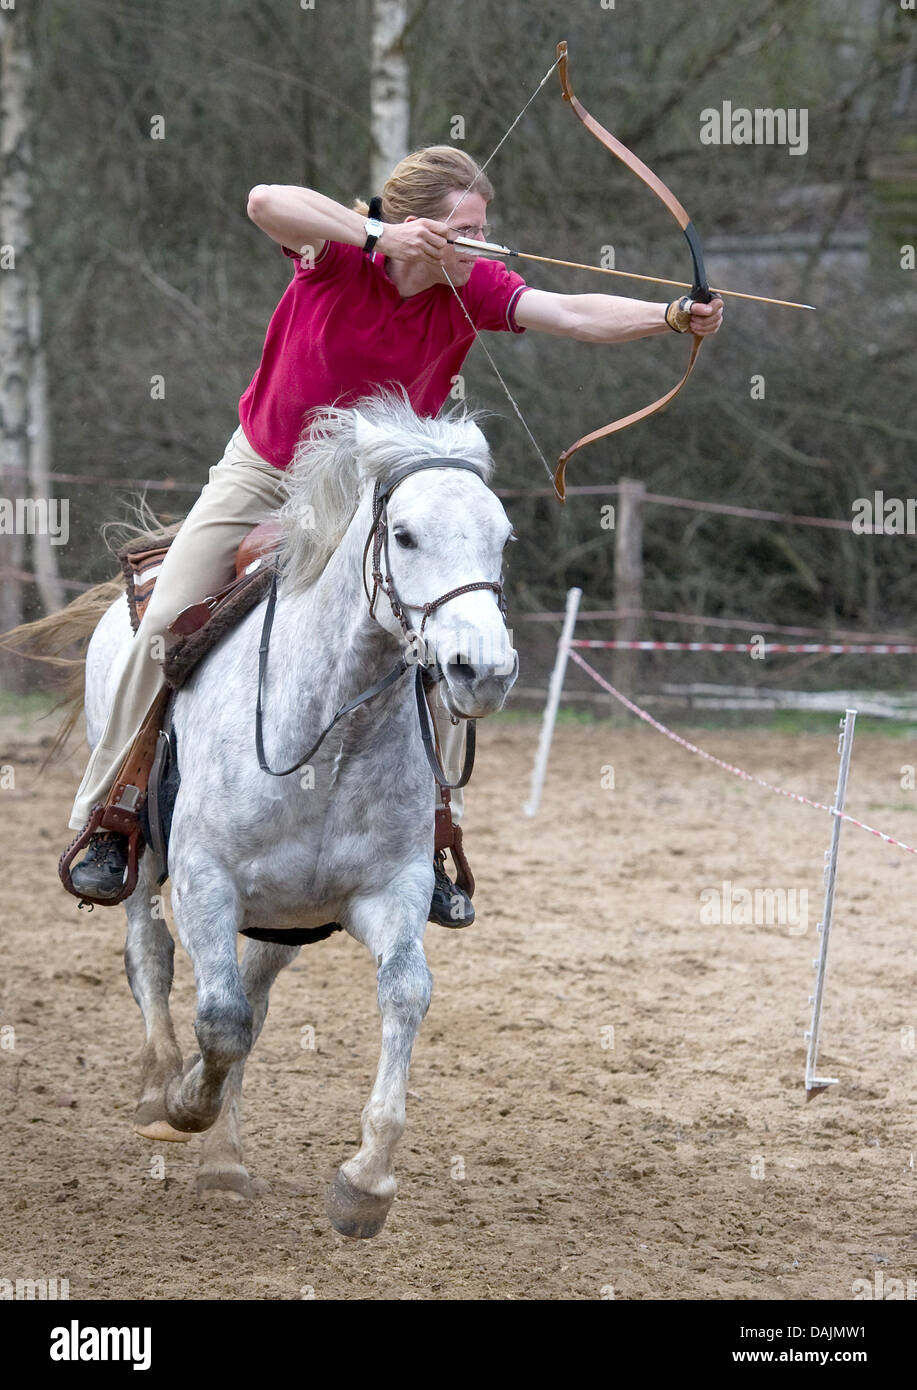 At the Sunbow Ranch, Christian Scholle-Prestin trains the archery on horseback in  Muencheberg, Germany, 11 April - Stock Image